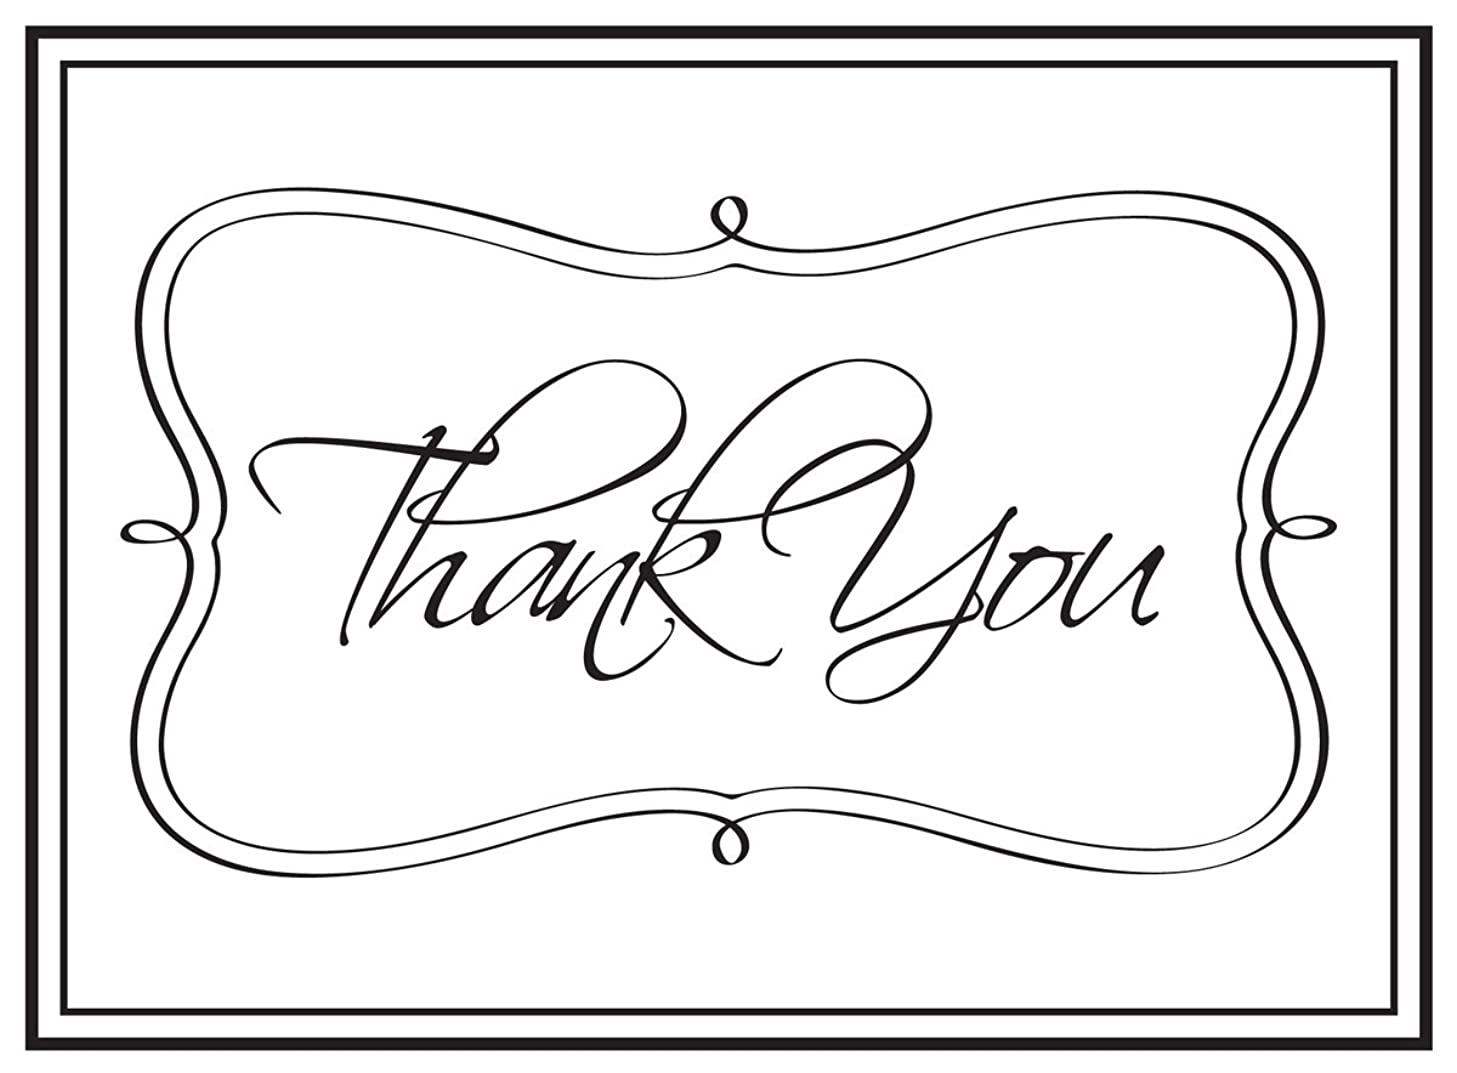 Darice Thank You Embossing Folder, 4.25-Inch by 5.75-Inch